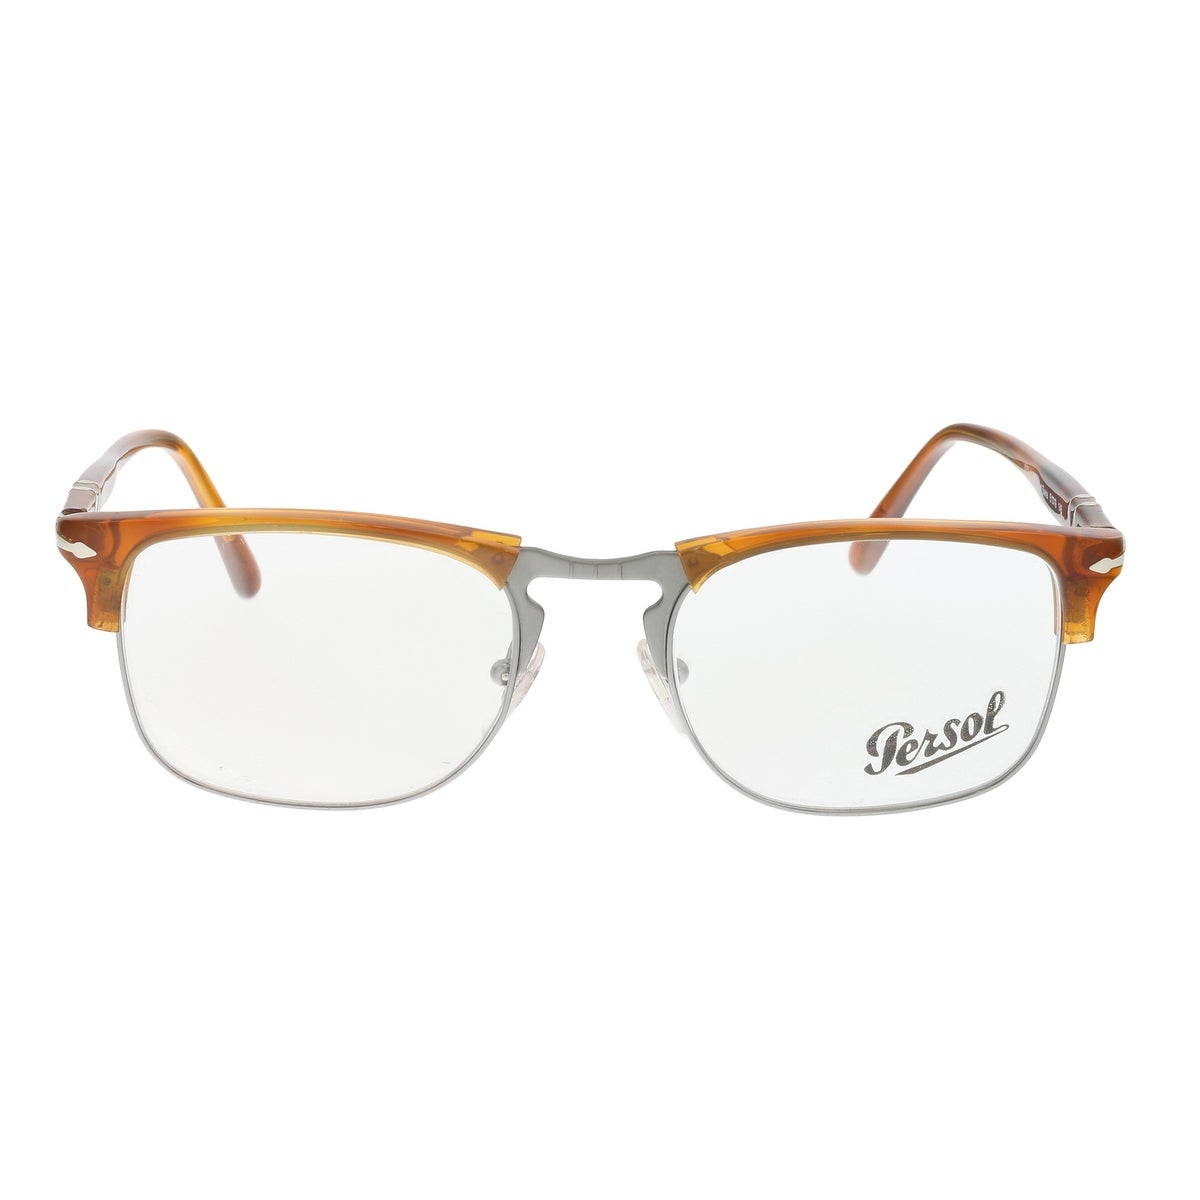 Shop Persol PO8359V 96 Terra di Siena Amber/Silver Square Optical ...